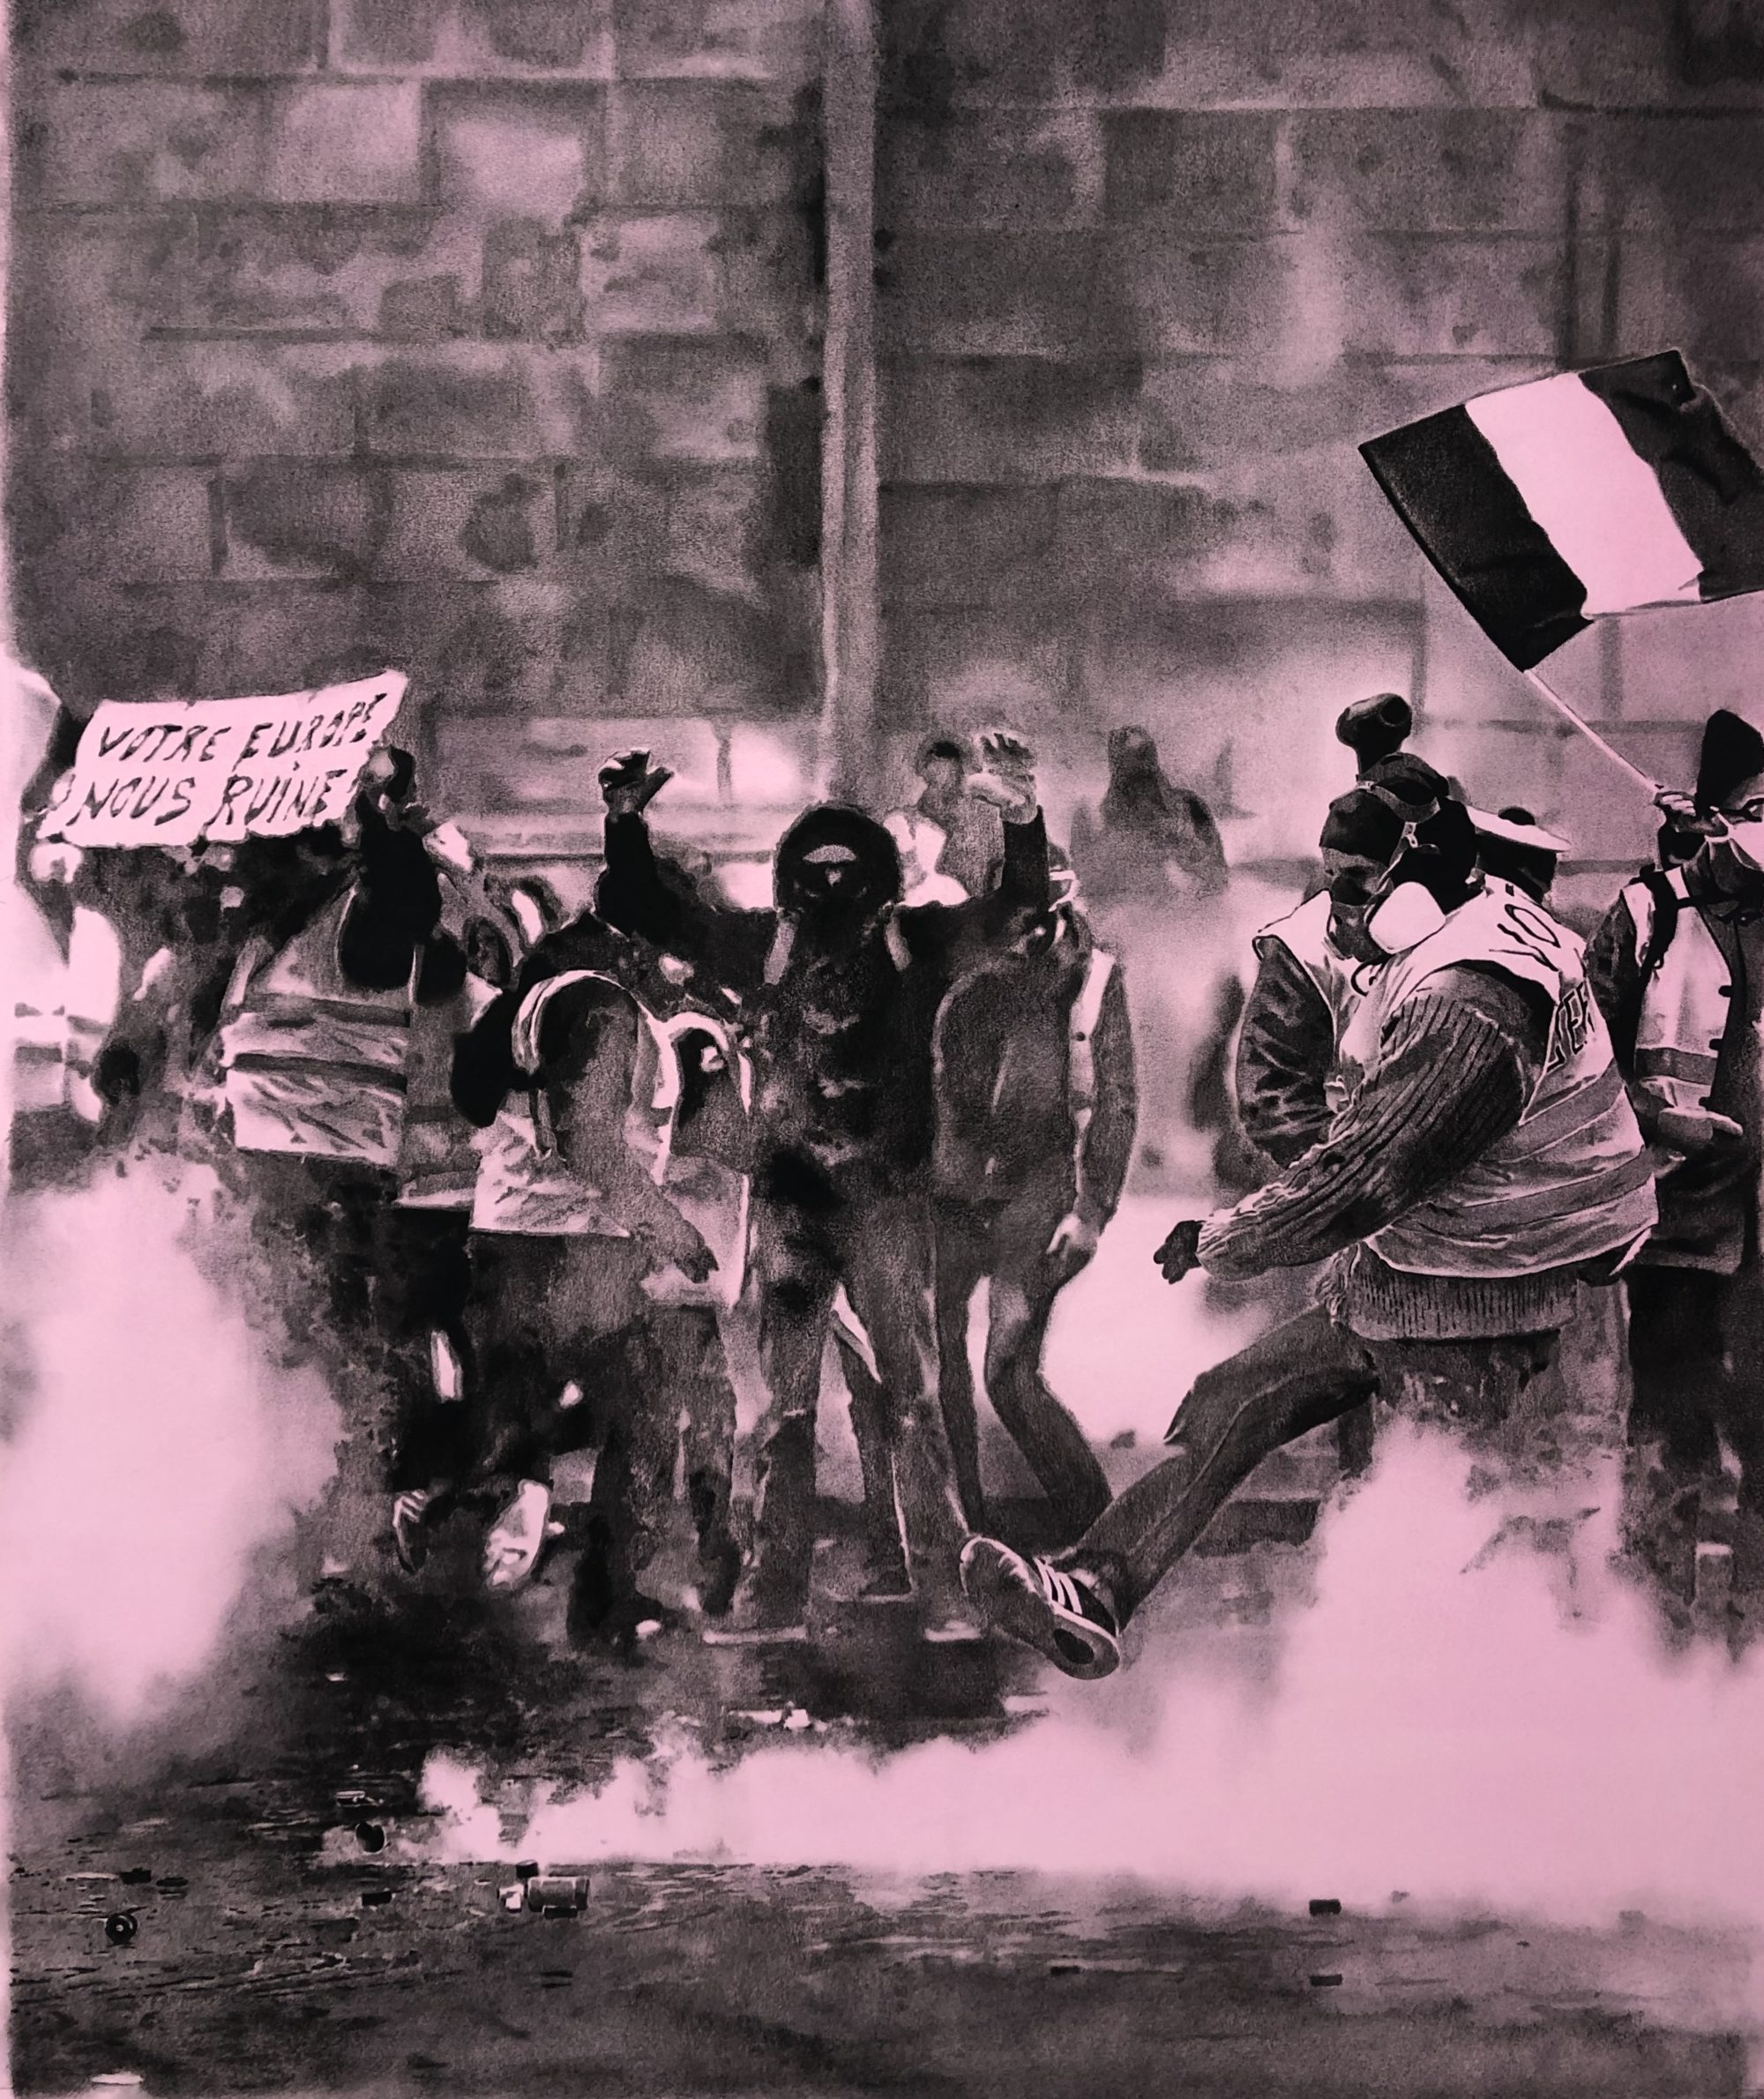 Black and pink drawing of protesters in Paris.